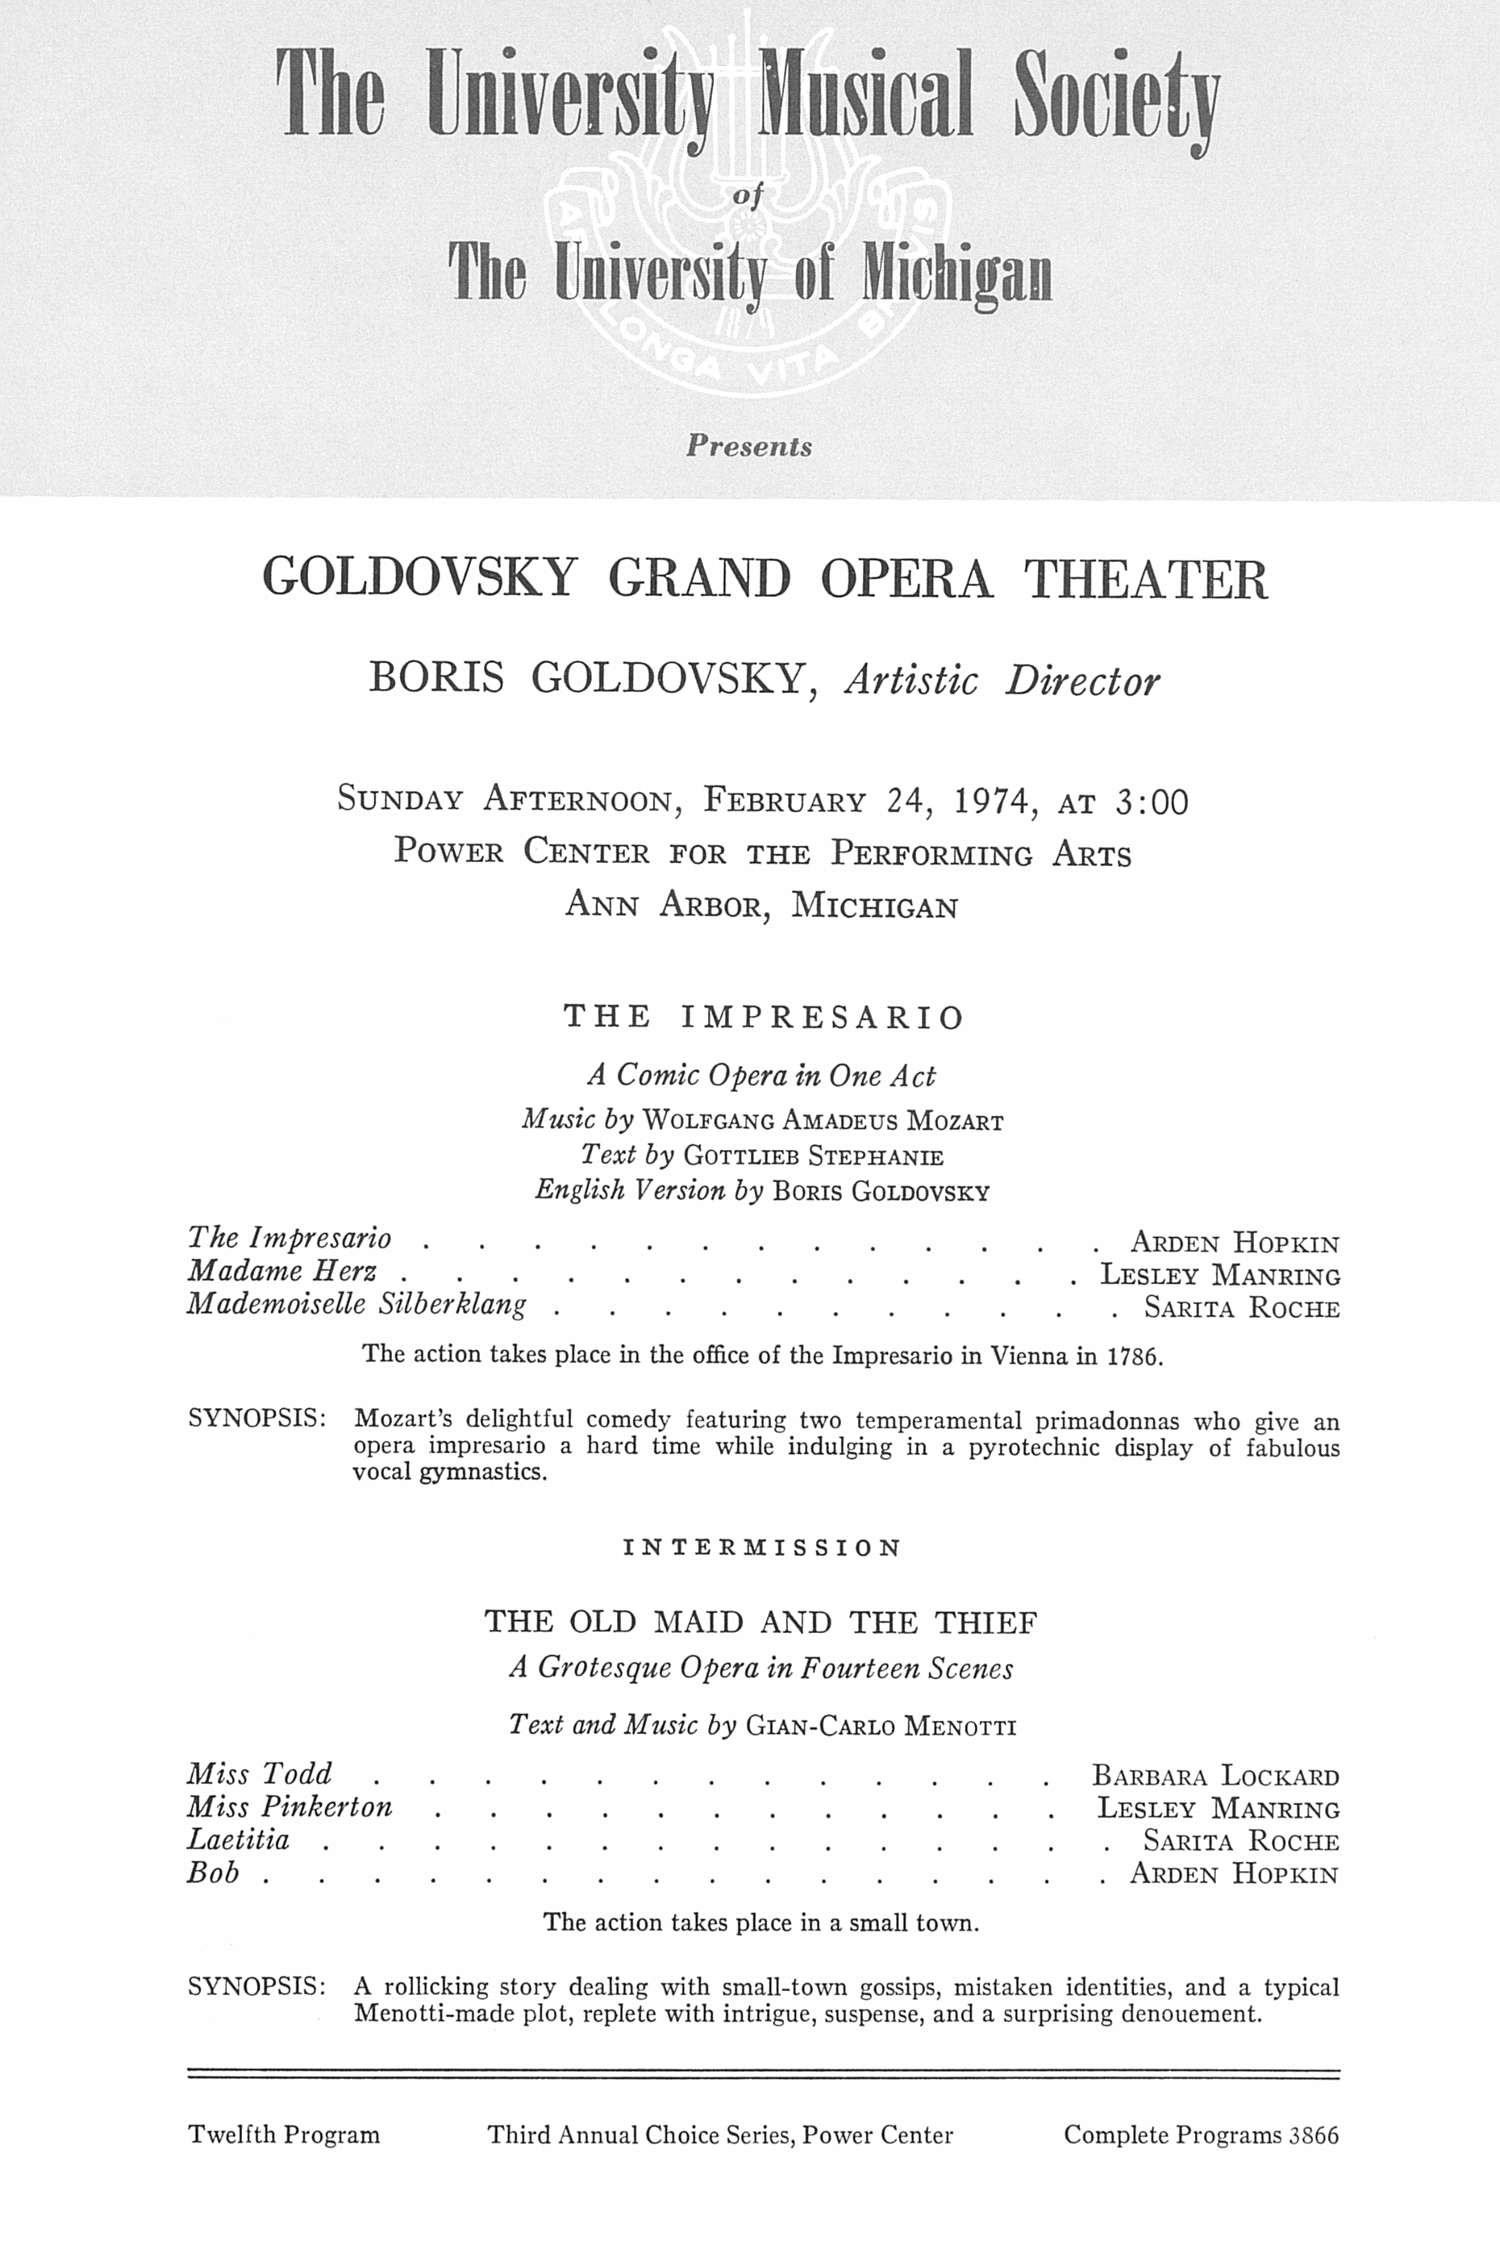 UMS Concert Program, February 24, 1974: Goldovsky Grand Opera Theater -- Boris Goldovsky image